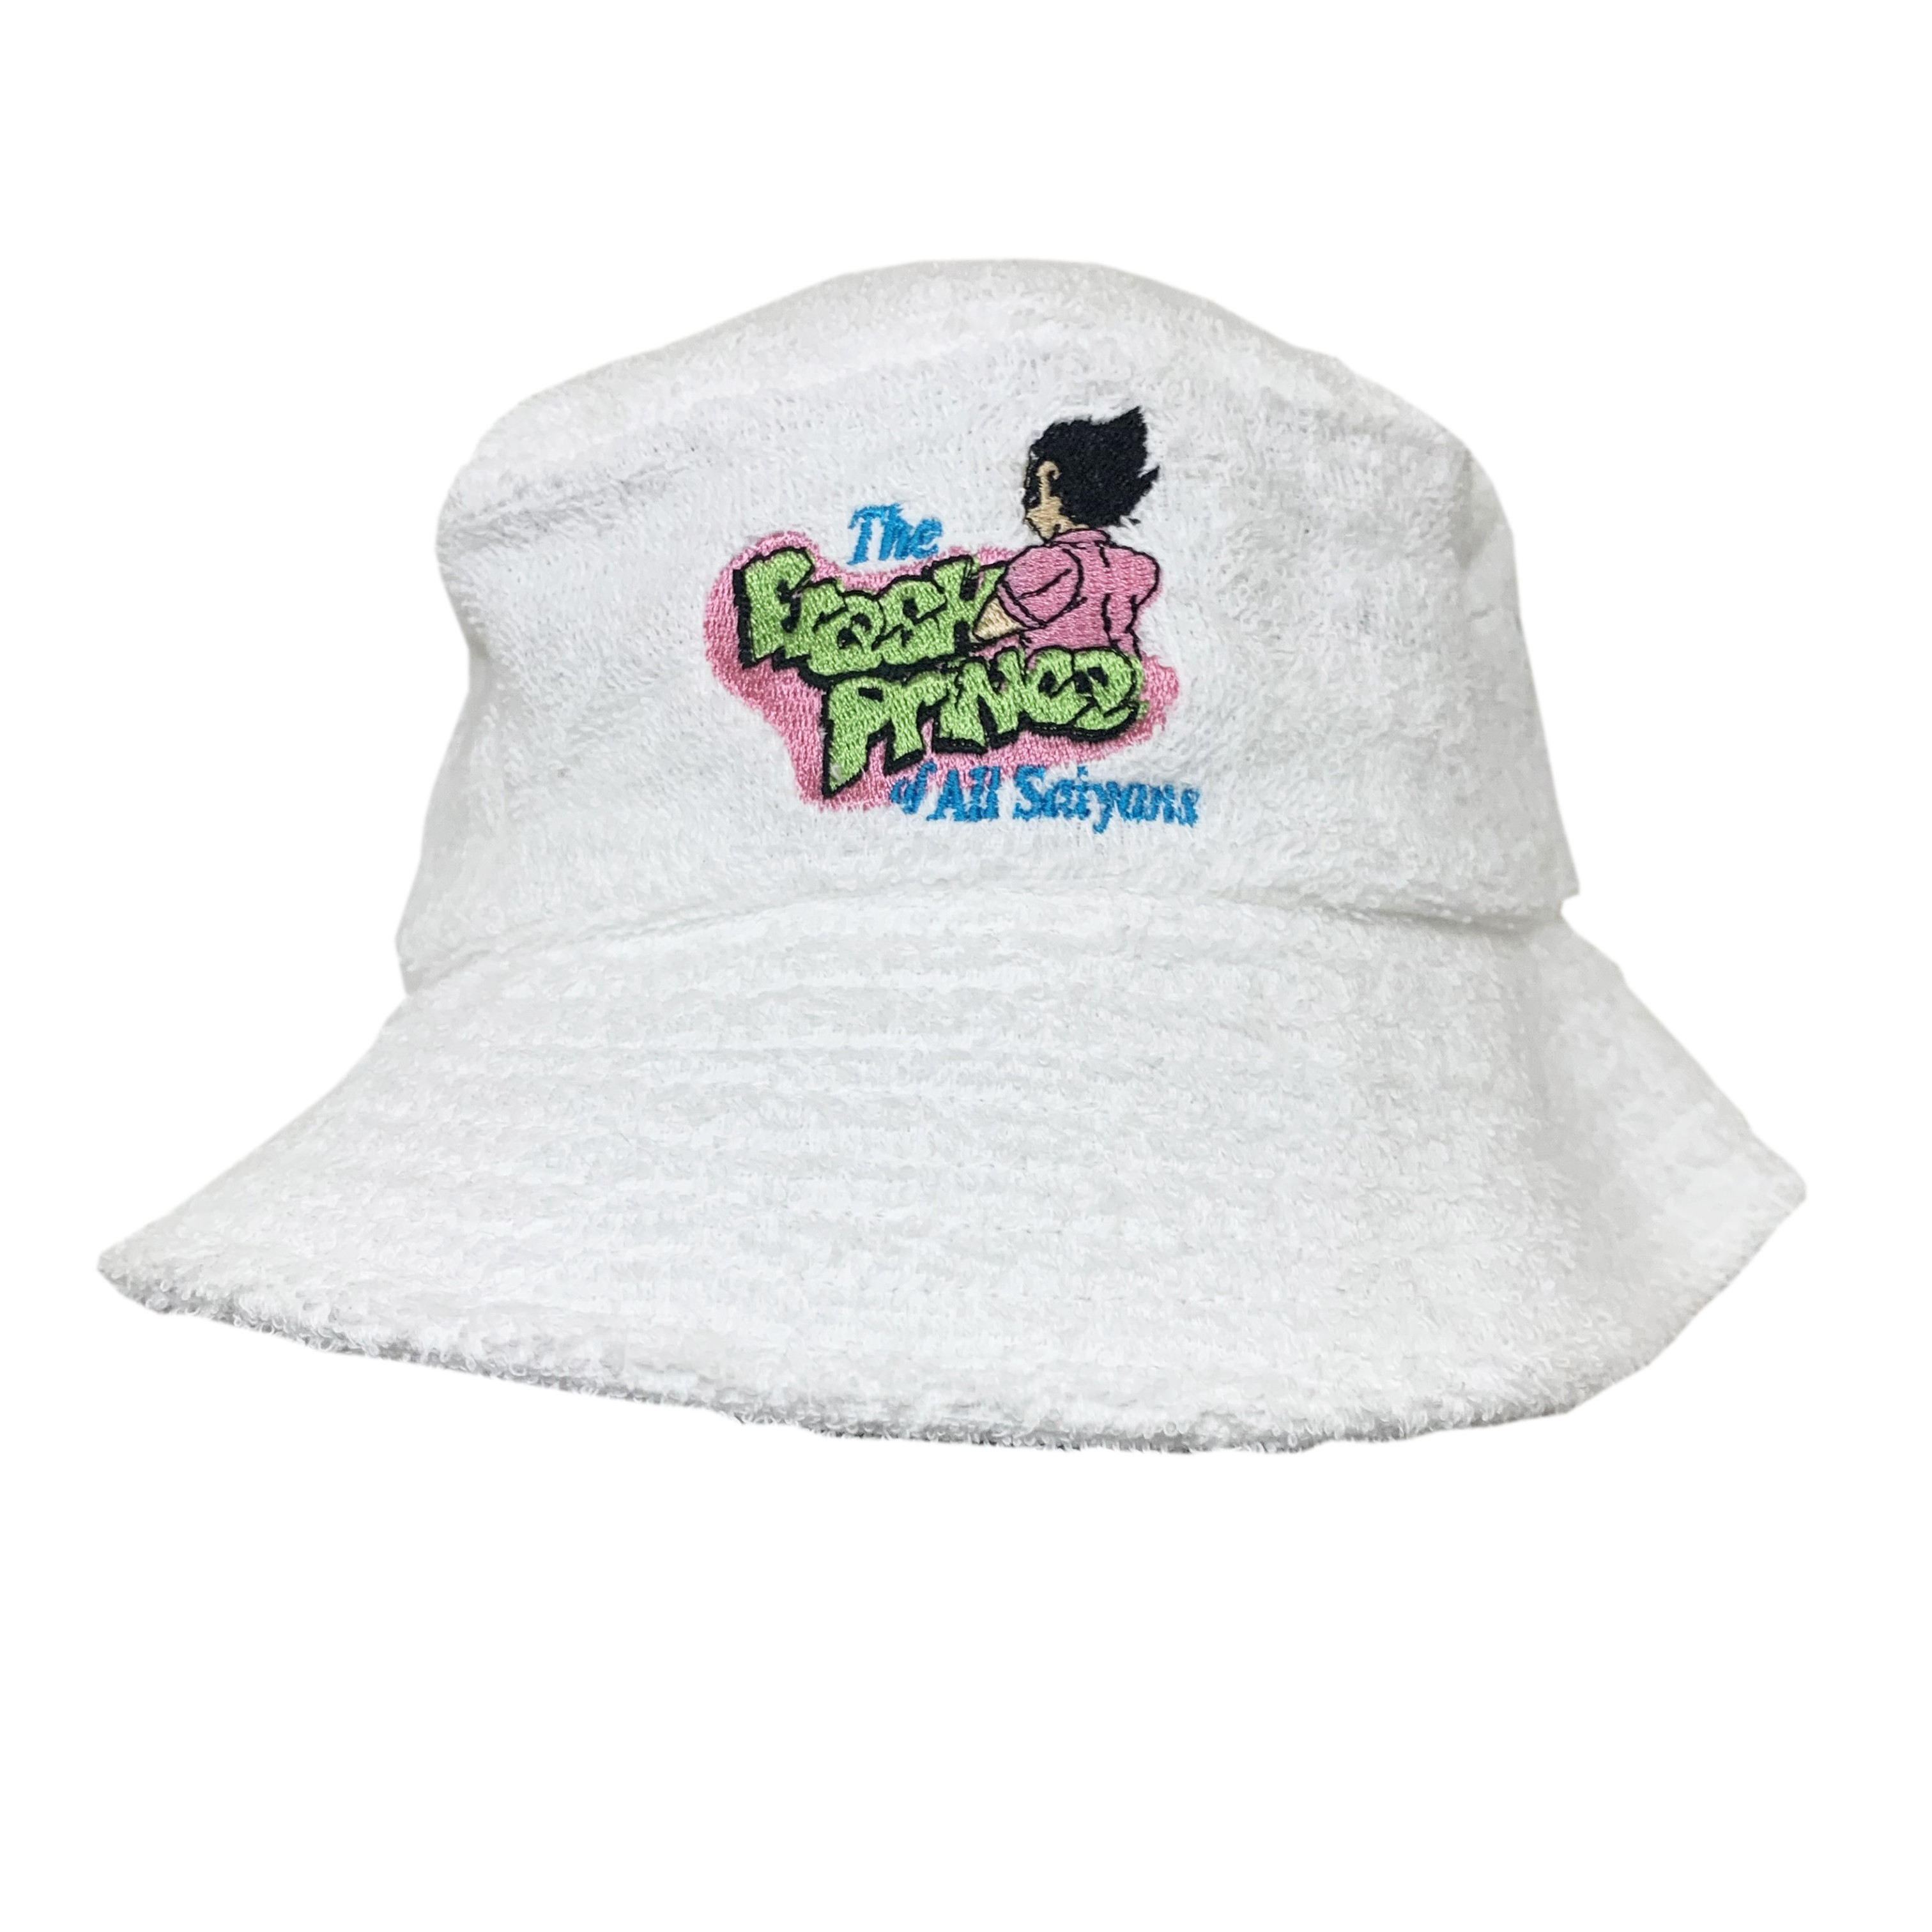 FRESH PRINCE OF SAIYANS TERRY TOWELLING BUCKET HAT